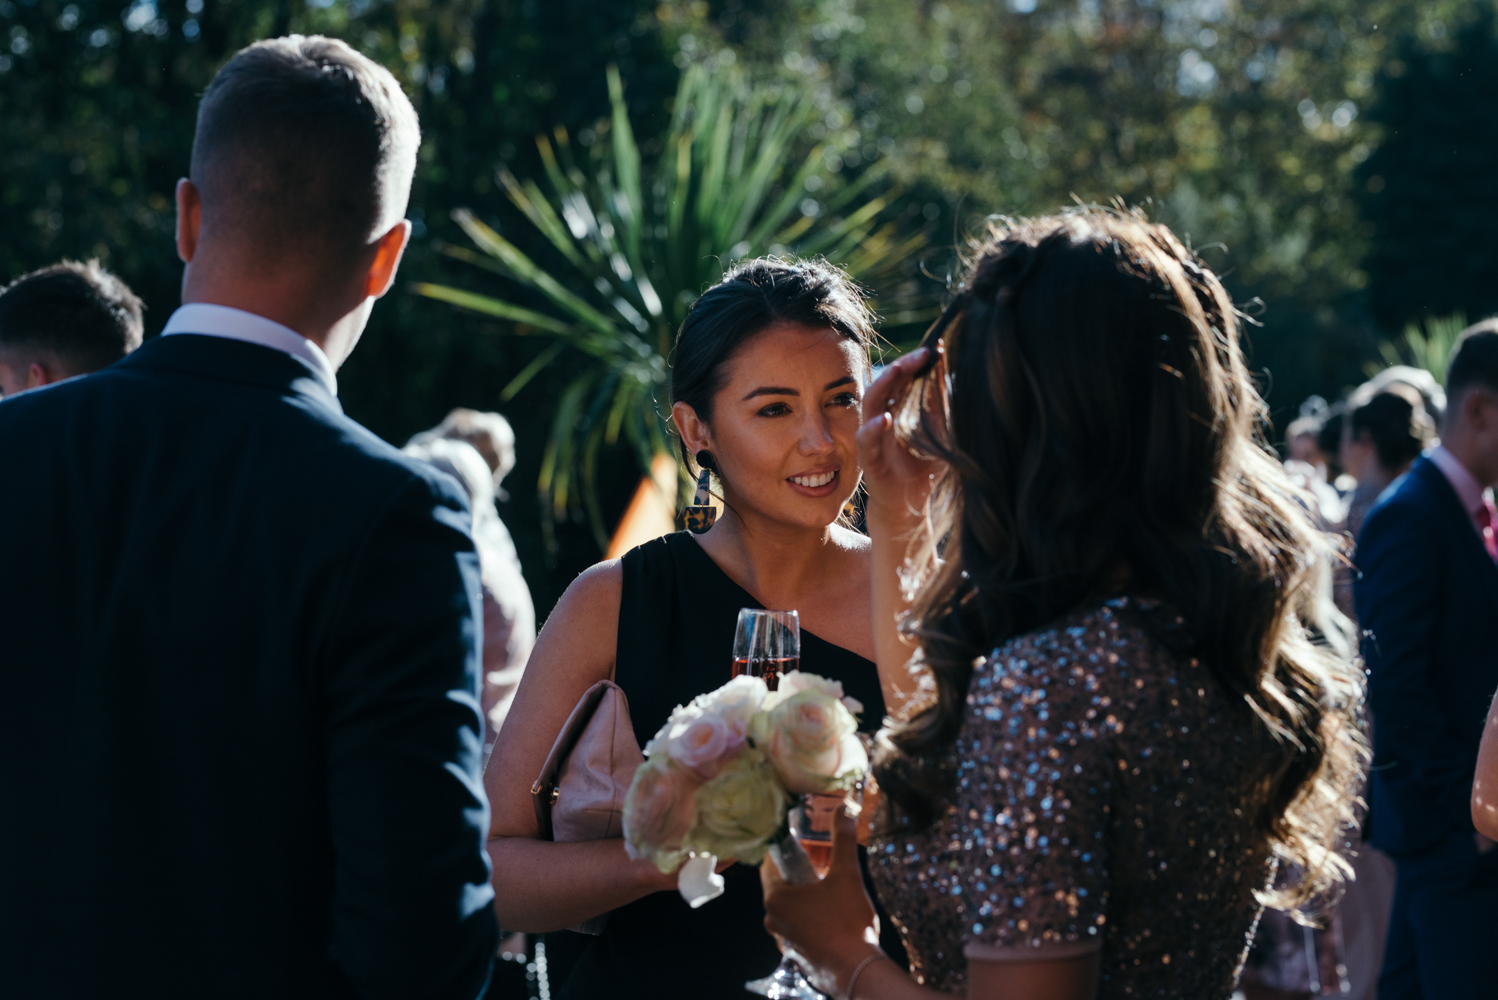 Another candid photo of one of the wedding guests during the drinks reception